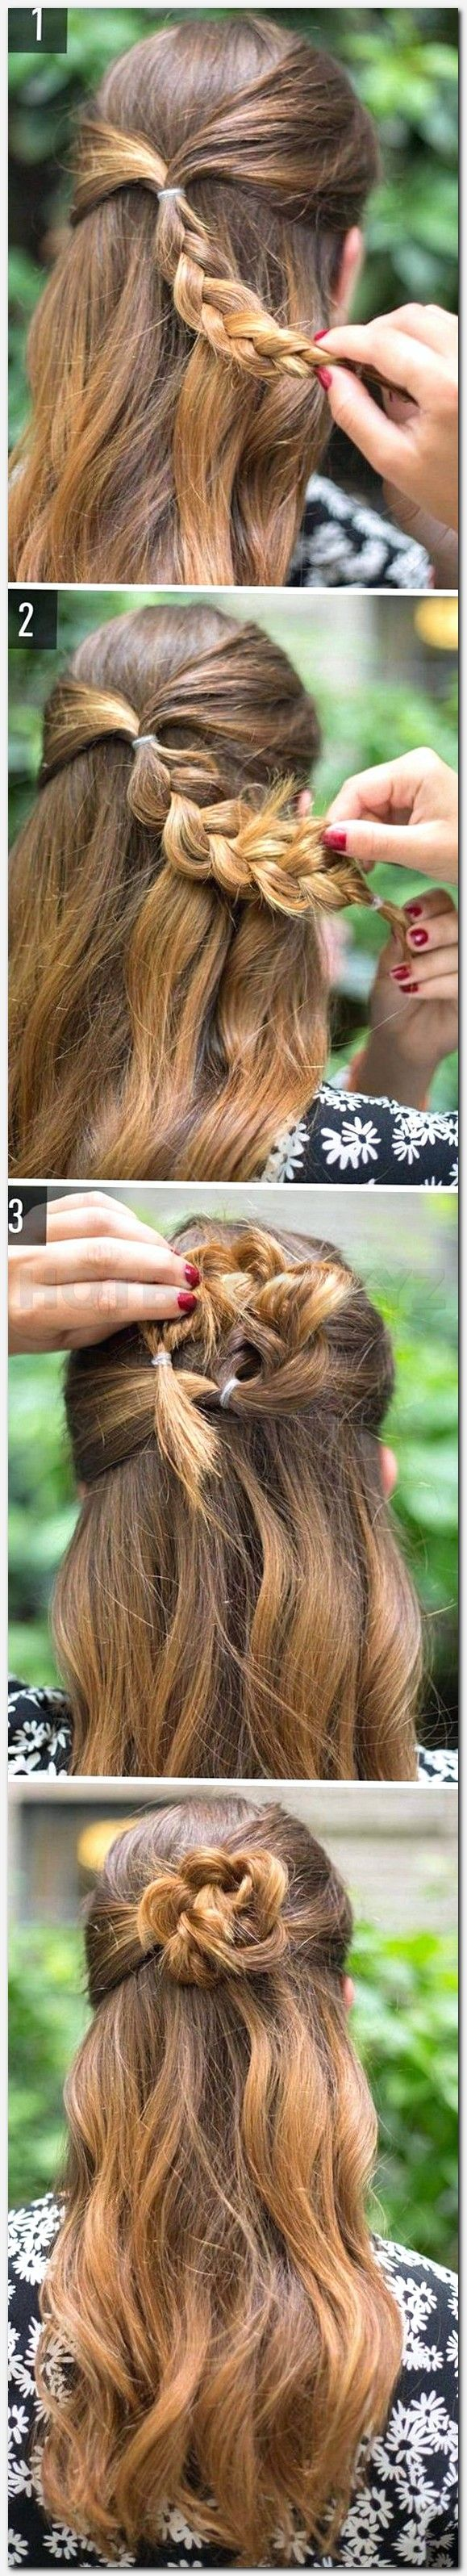 hair wedding styles, on trend hairstyles 2017, heir istail, short hairdos for girls, hairstyles in fashion, easy updo short hair, short hairstyles for thin hair, long updo hairstyles, pretty short hairstyles, haircut 2017 fall, special haircut for curly hair, long hairstyle cuts 2017, hairstyles medium hair cuts, bridesmaid hair designs, simple hairstyles for naturally curly hair, updo long hair wedding